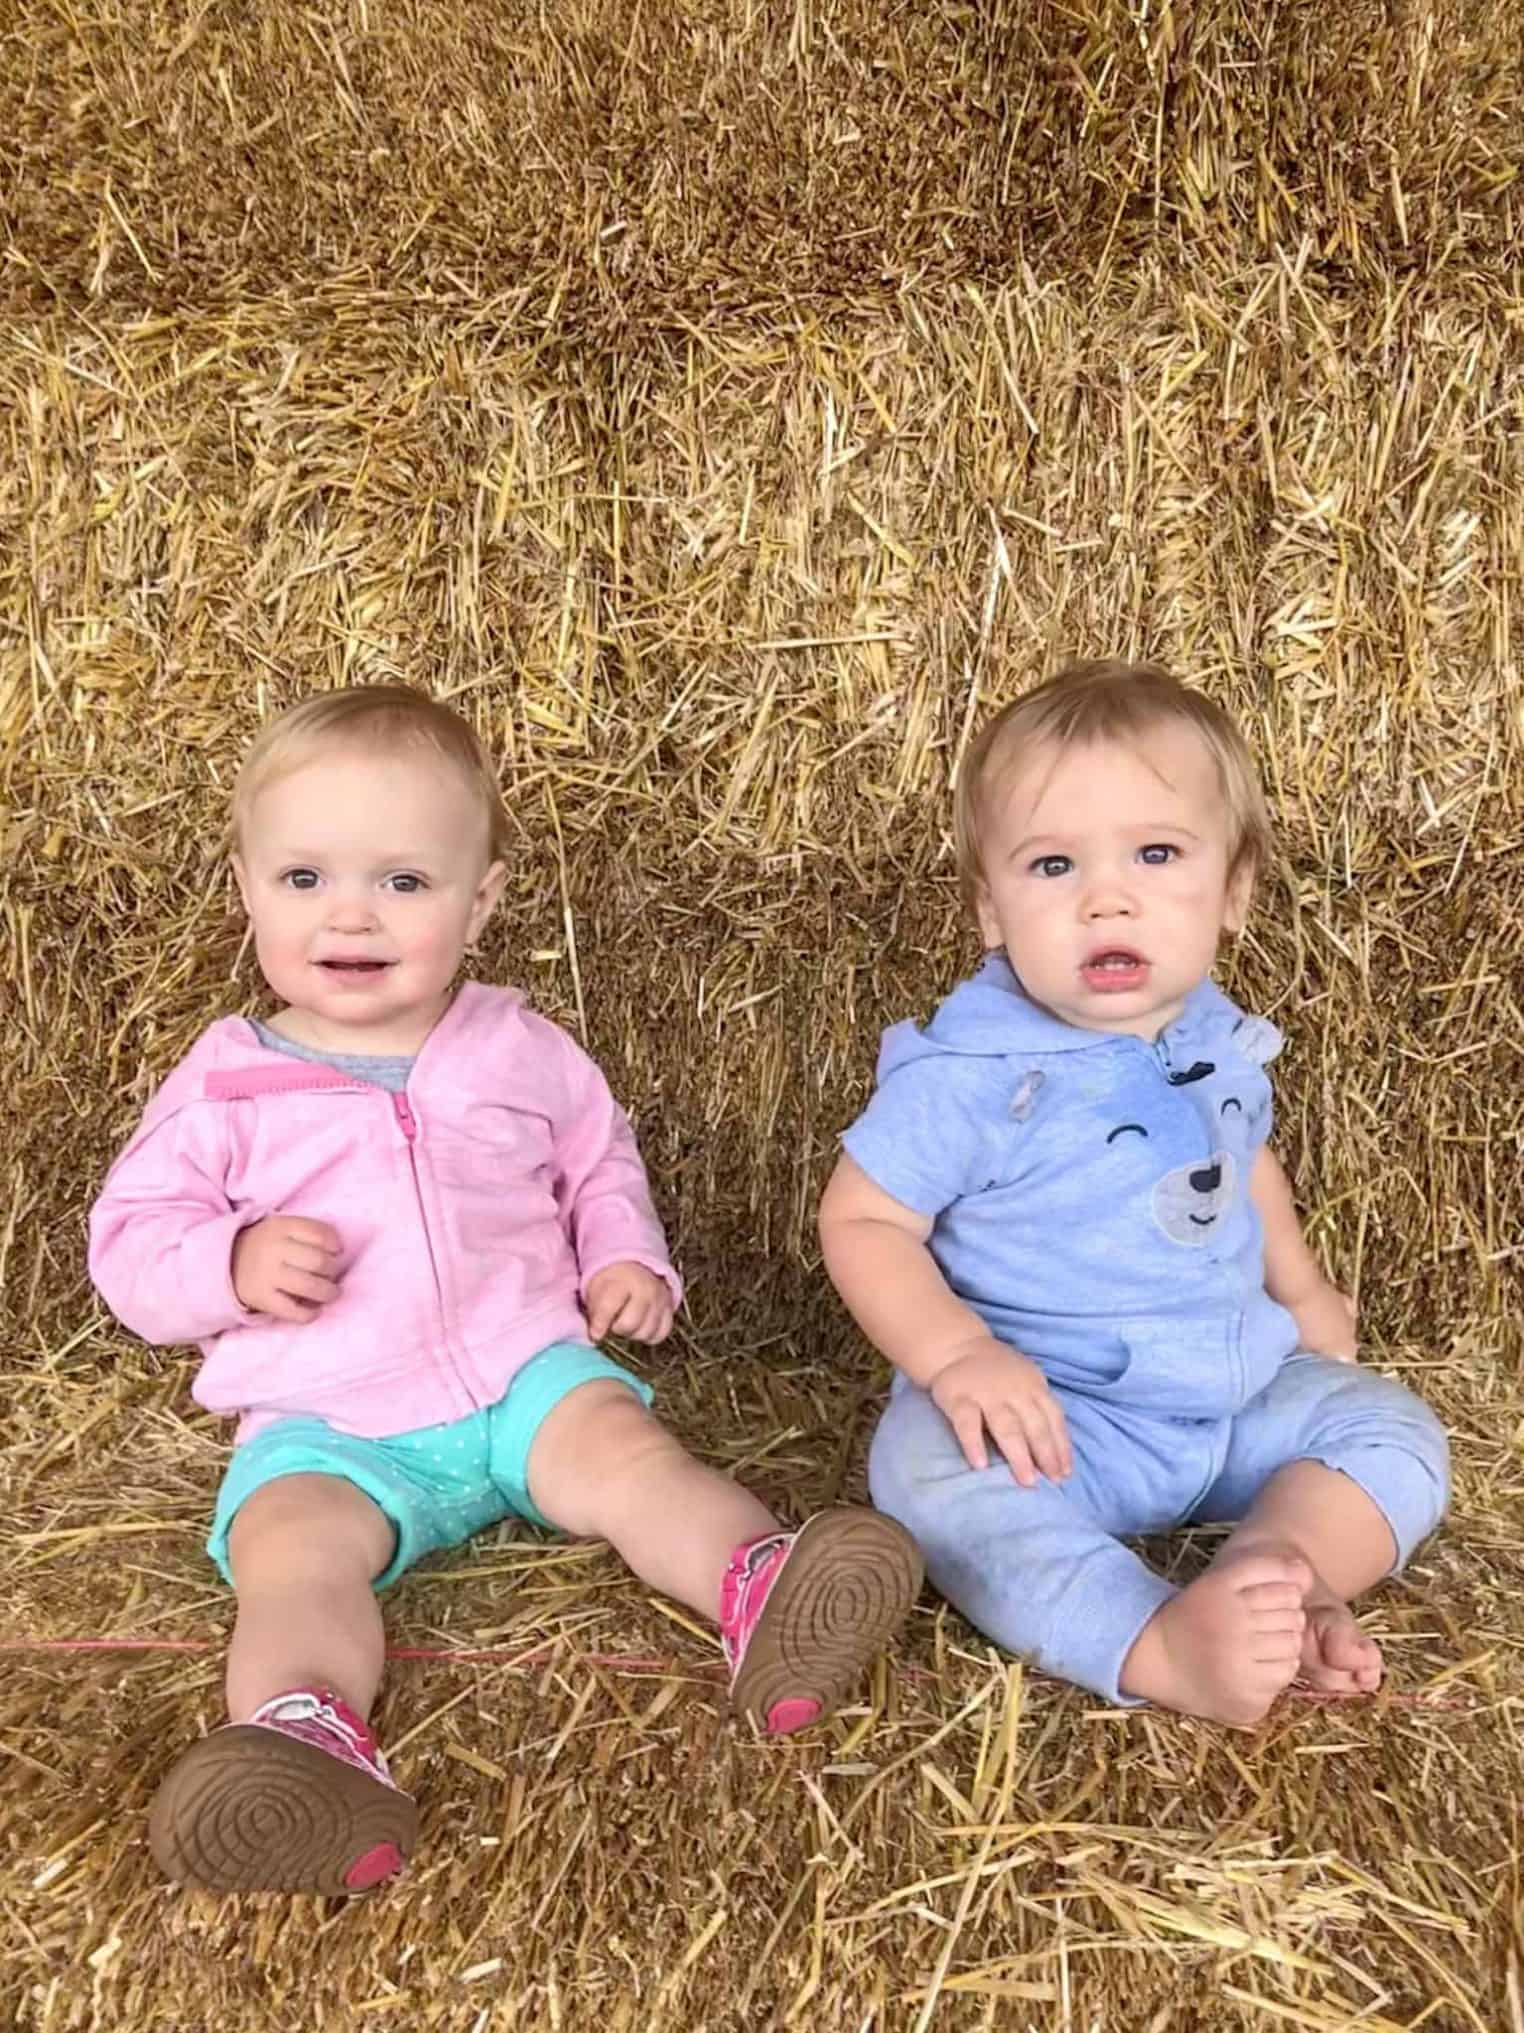 Two babies at Eckert's Farm